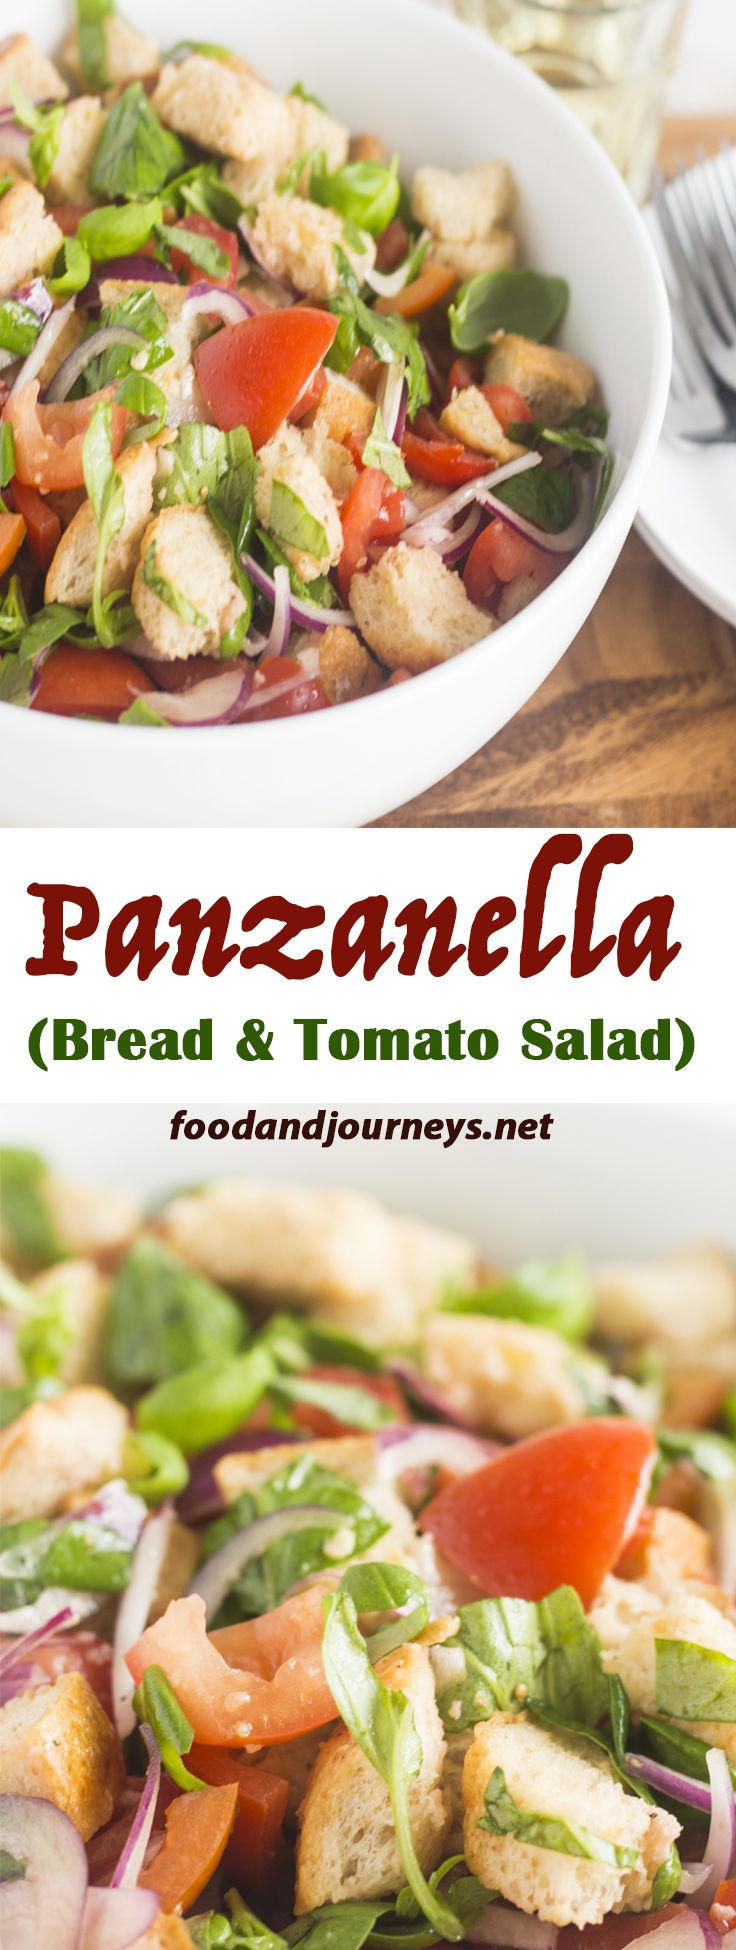 Panzanella, a delicious salad from the region of Tuscany that's made of tomatoes, bread, onion and fresh basil leaves. It can be eaten on its own or served as an appetizer!